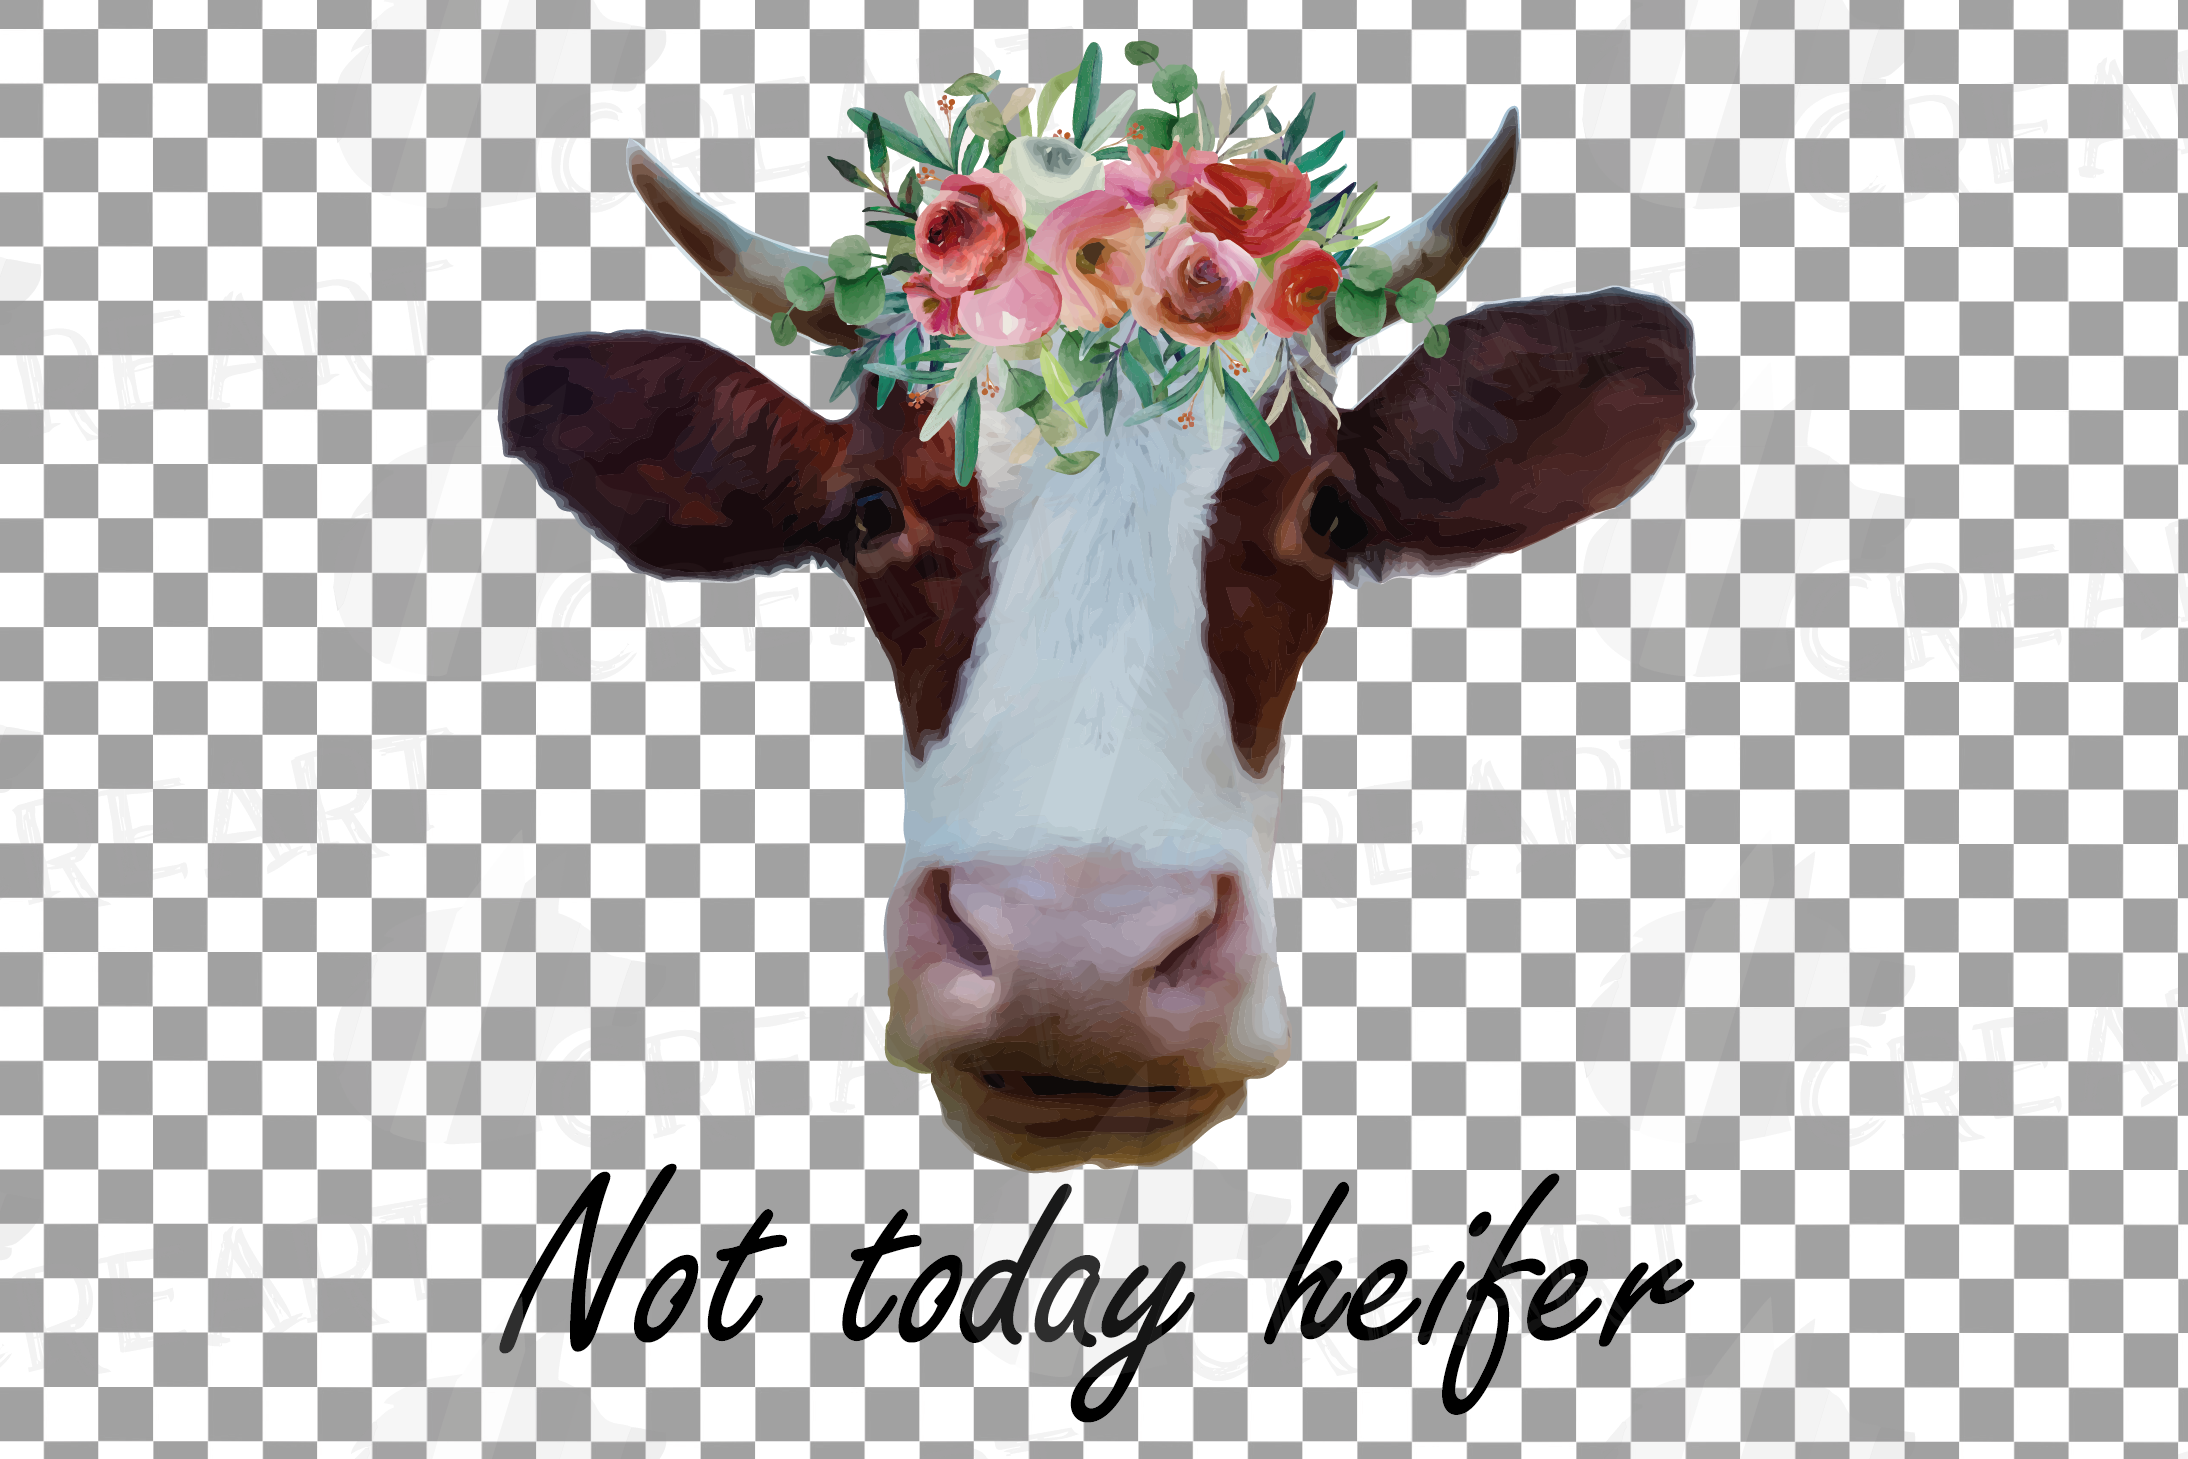 Cows with floral crown clip art. Not today heifer graphic example image 11